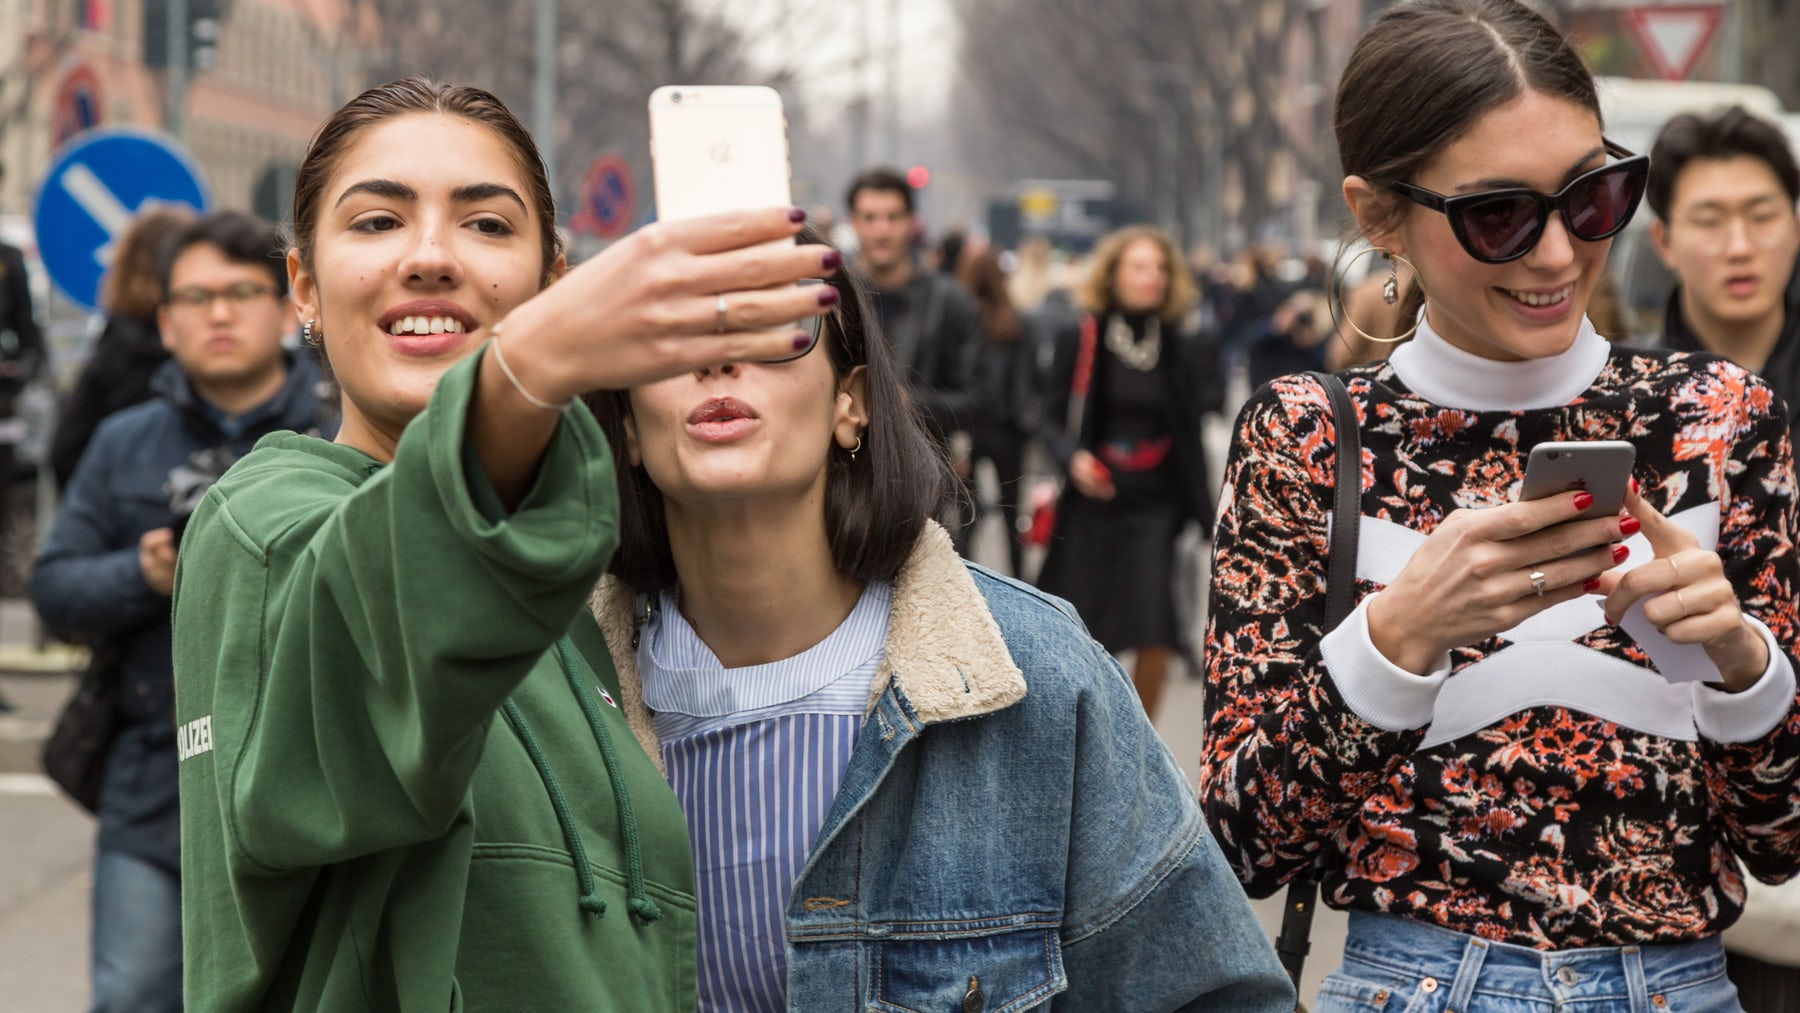 People taking selfies in Milan | Source: Shutterstock